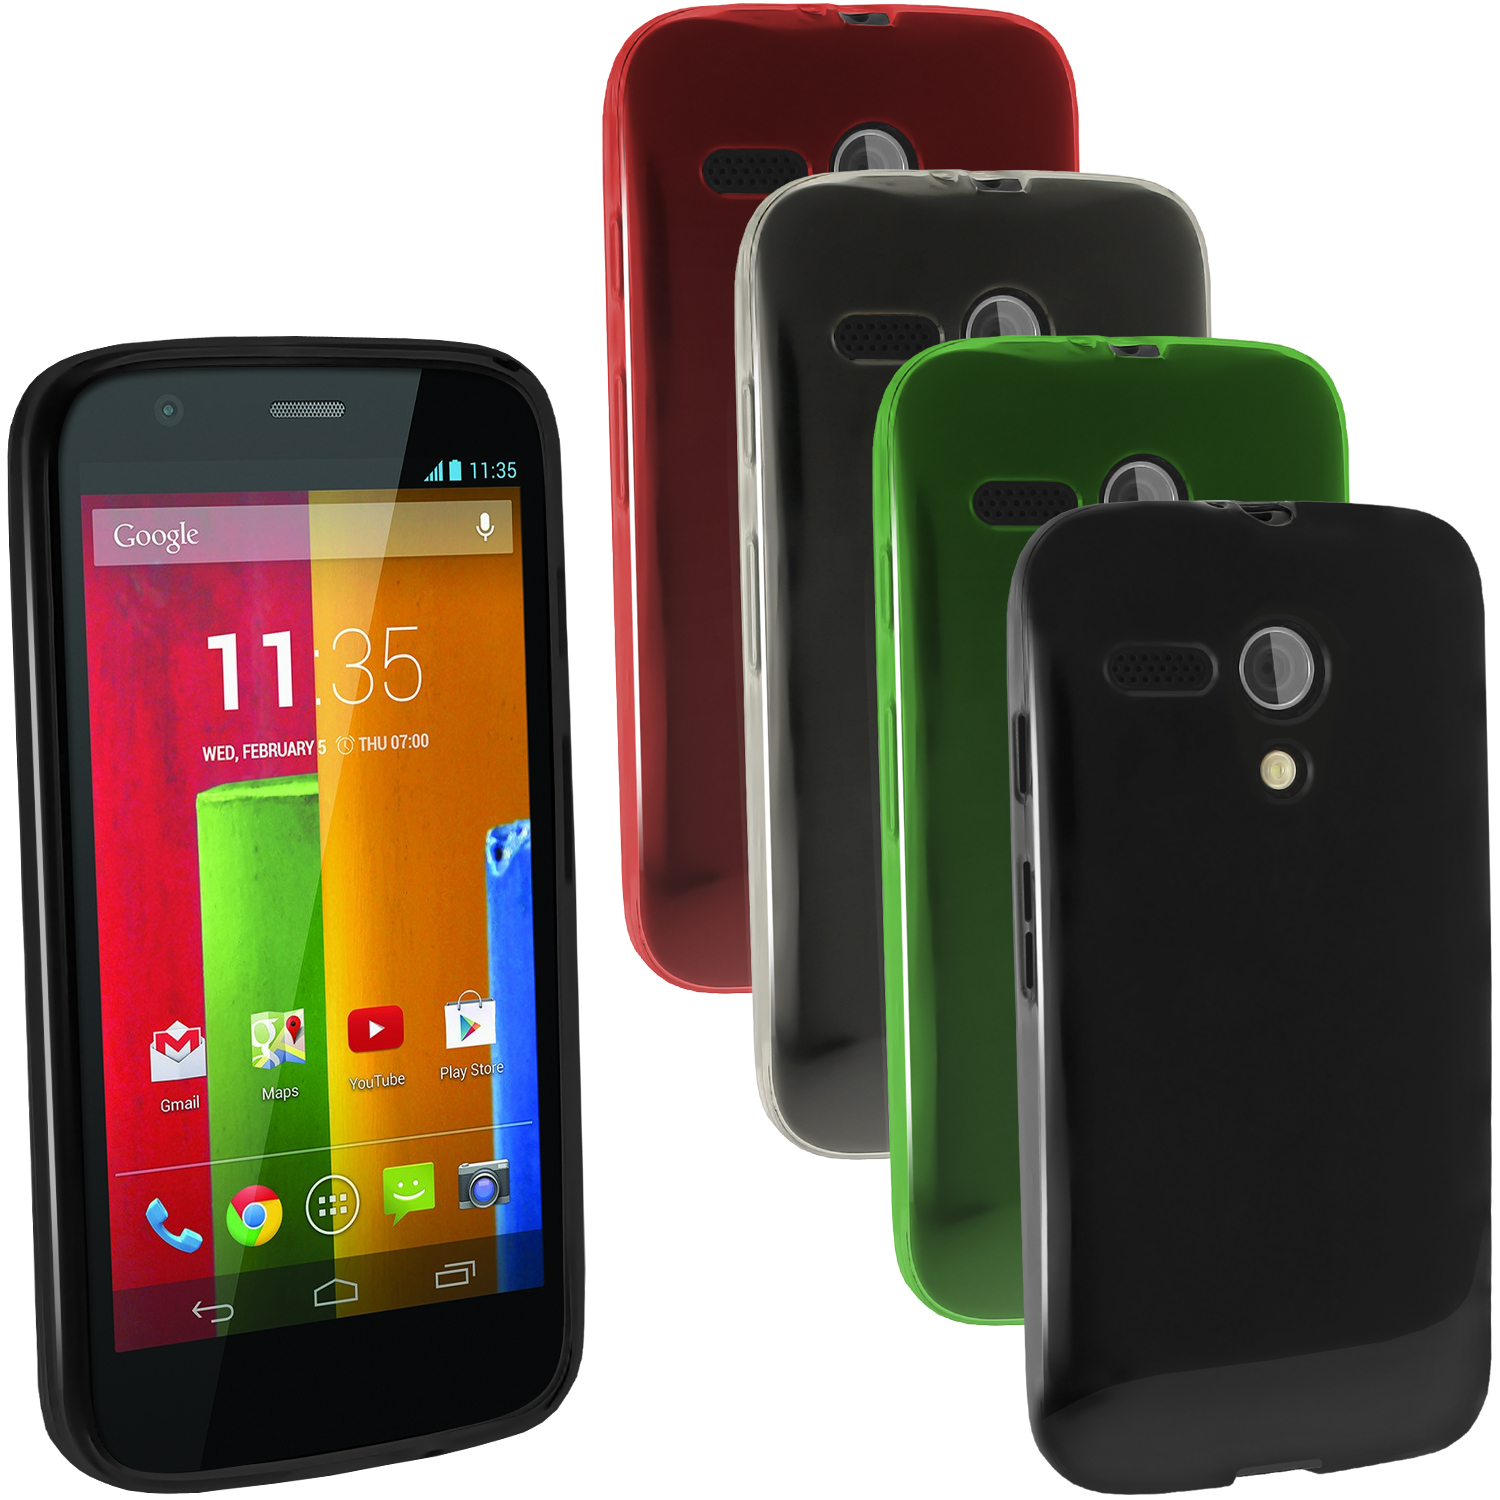 super popular 42a6b 90858 Details about Glossy TPU Gel Skin Case Cover for Motorola Moto G 4G 1st  Generation XT1032 1039